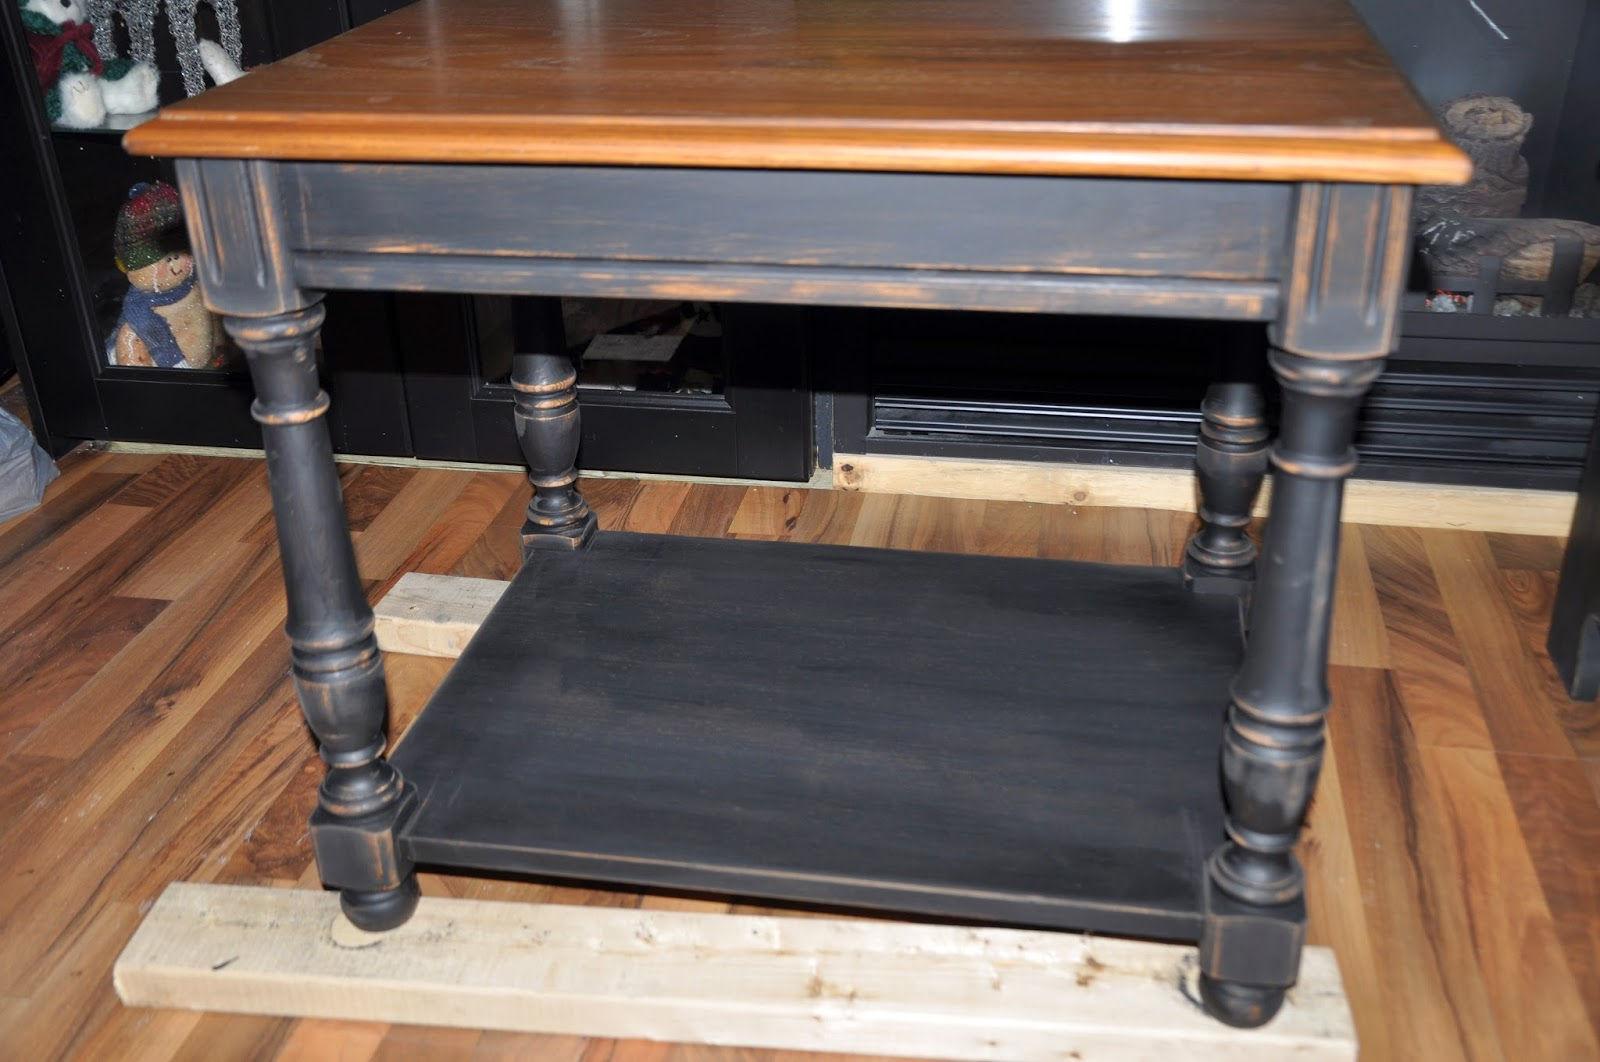 painting end tables black defendbigbird img painted and distressed alternatively yours long lamp shades for floor lamps what color throw pillows brown couch woodworking table